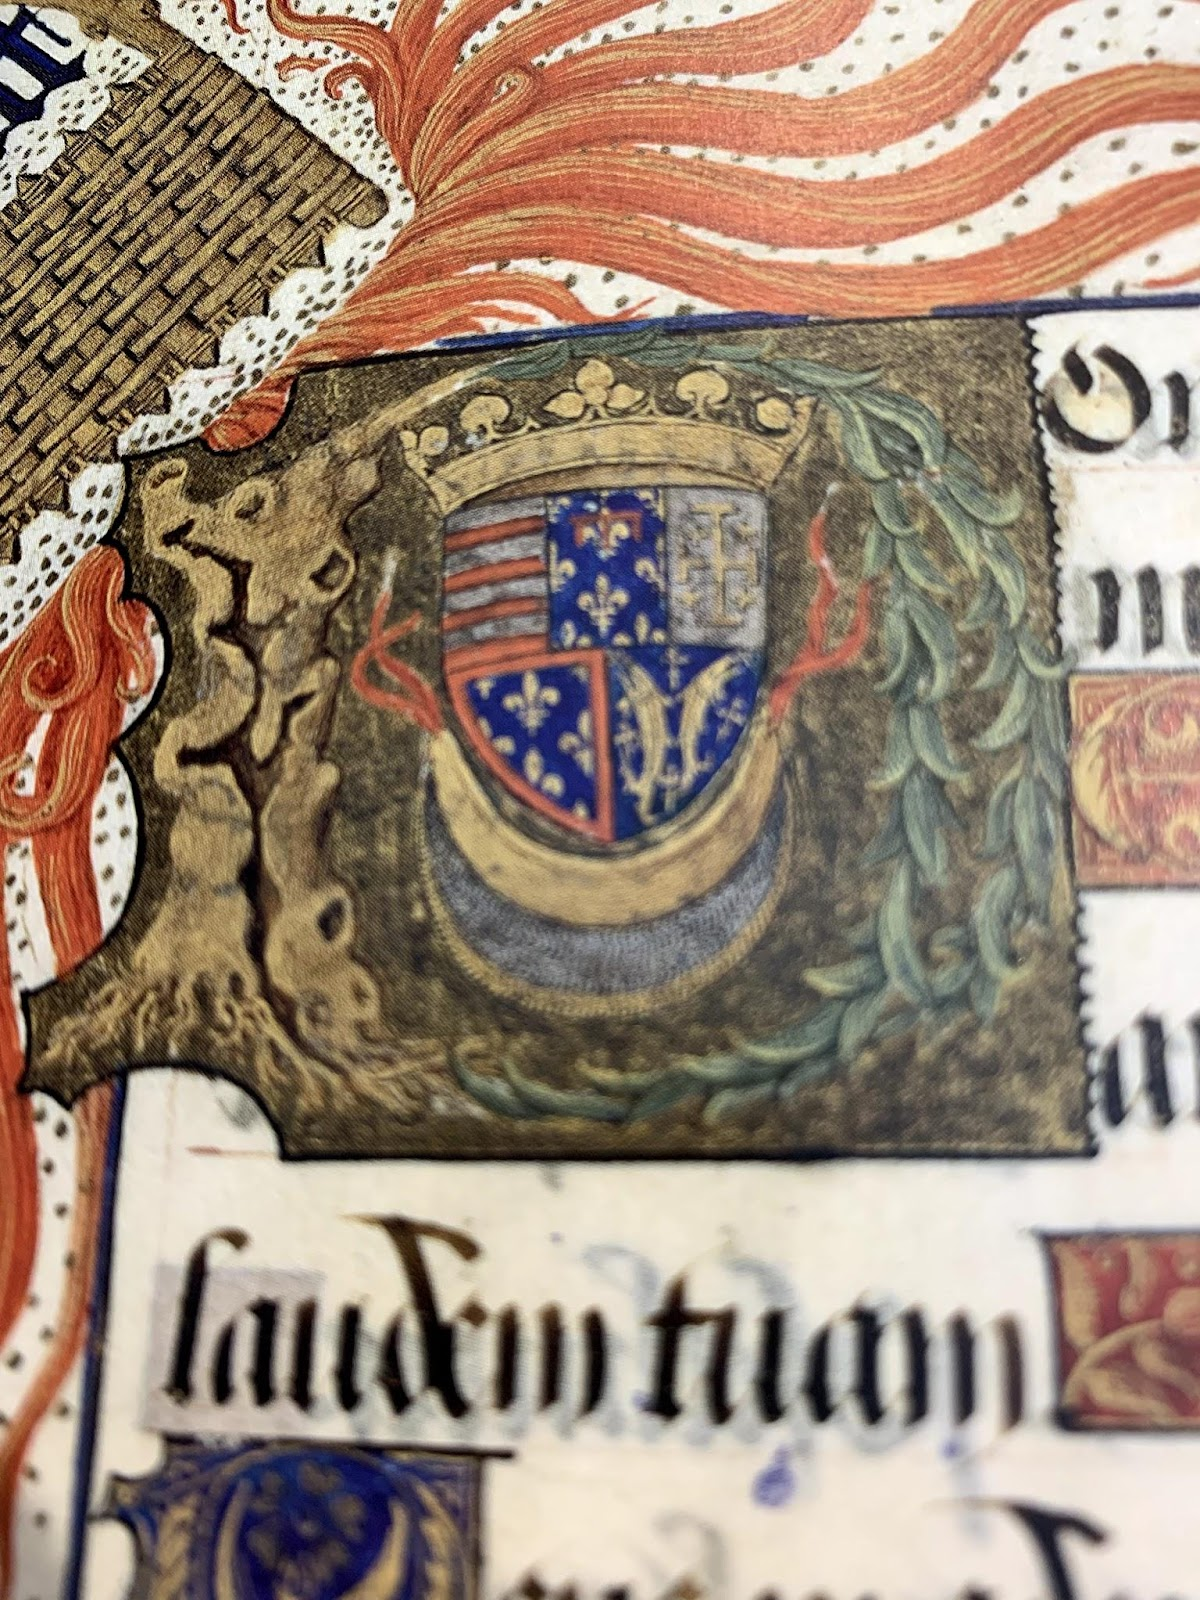 A champ initial 'D' made of a tree stump and branch. Inside, Rene's heraldry and the crescent, all topped with a crown.